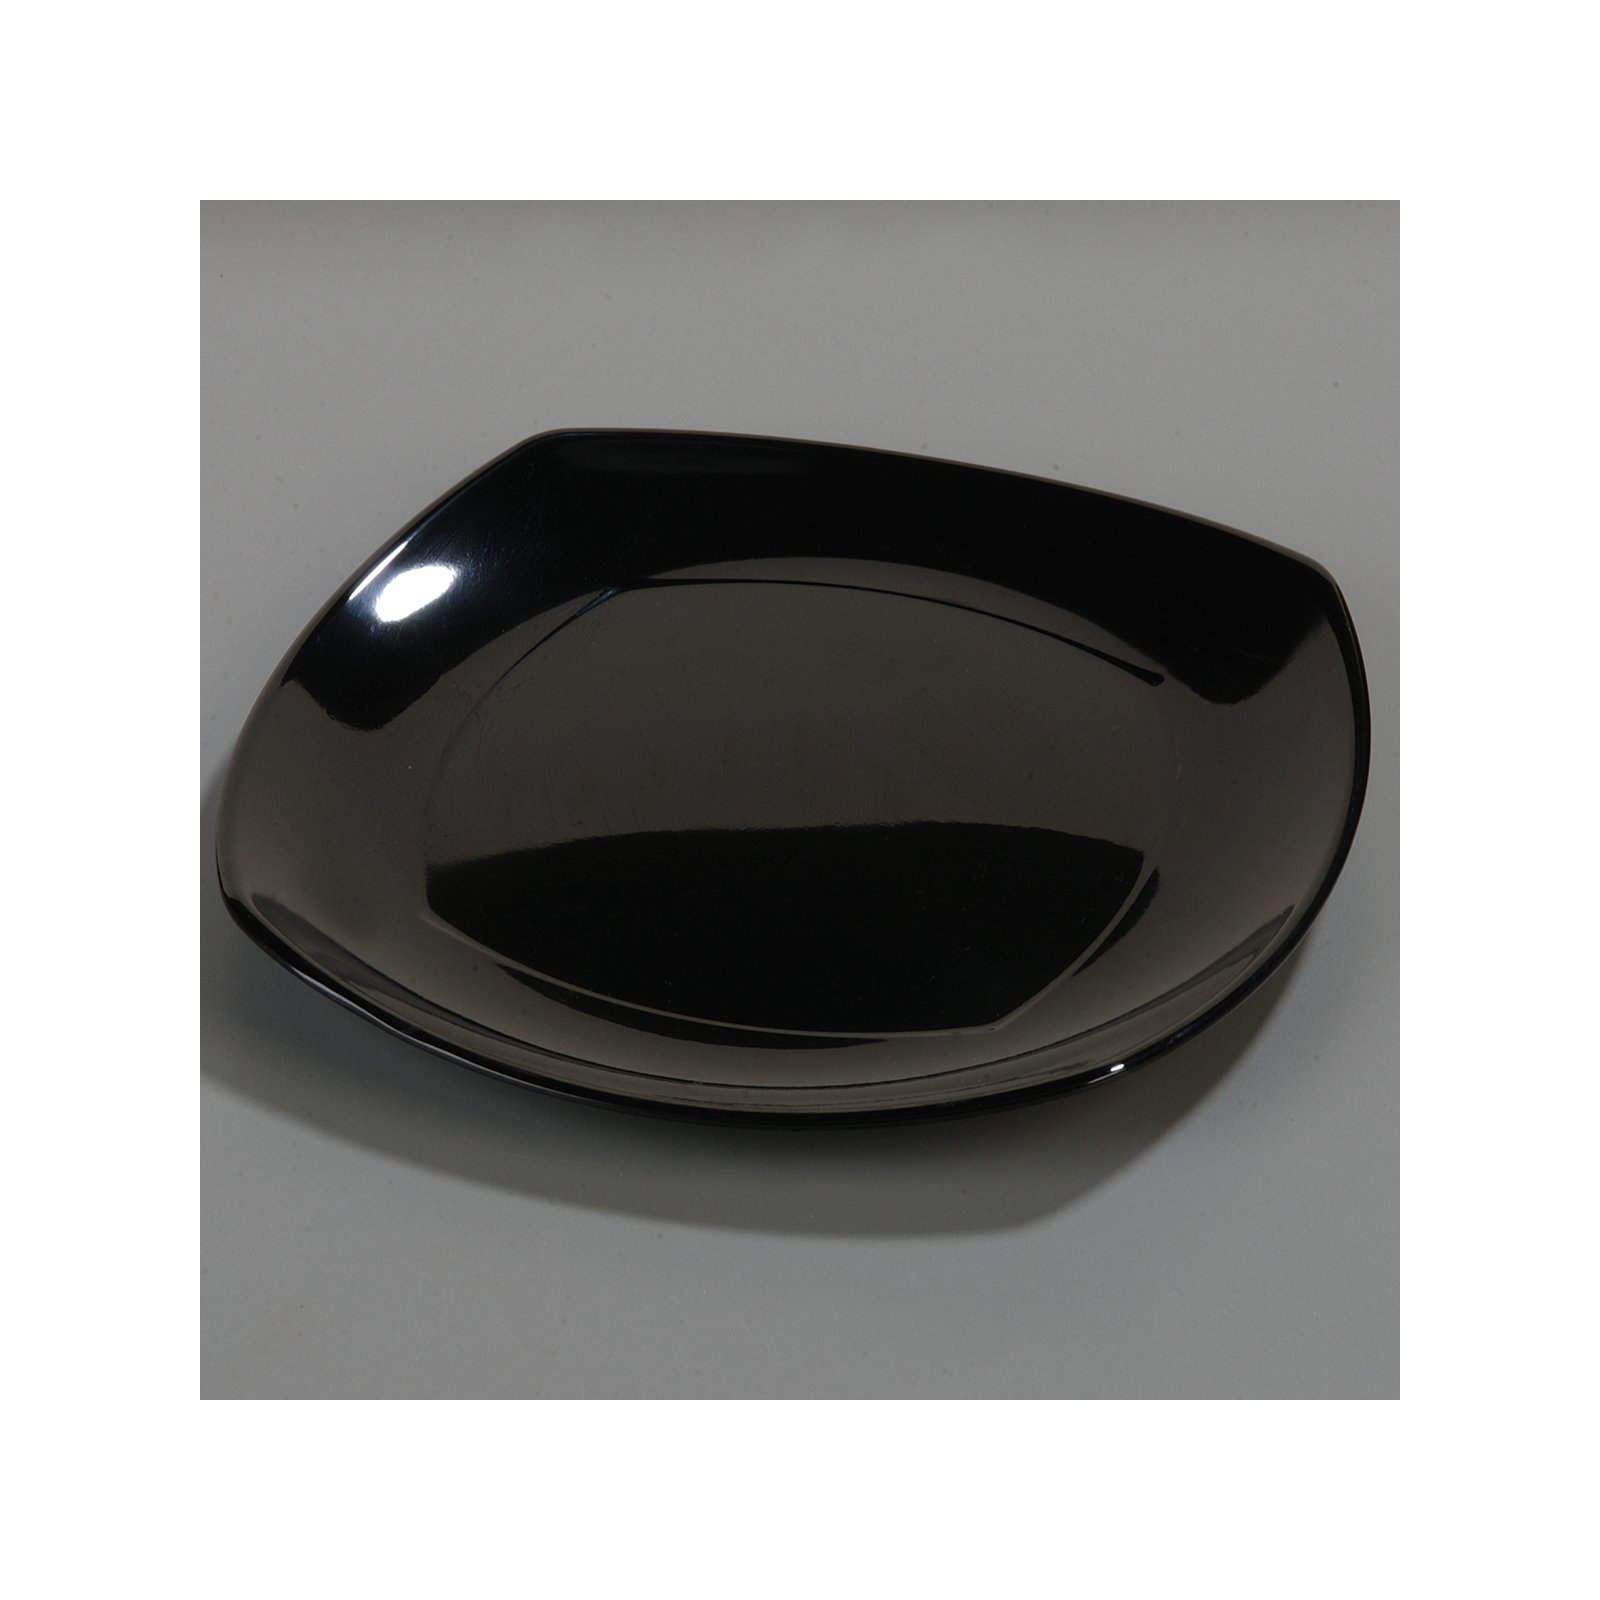 ... 4330803 - Melamine Upturned Corner Small Square Plate 7.75  - Black  sc 1 st  Carlisle FoodService Products & 4330803 - Melamine Upturned Corner Small Square Plate 7.75